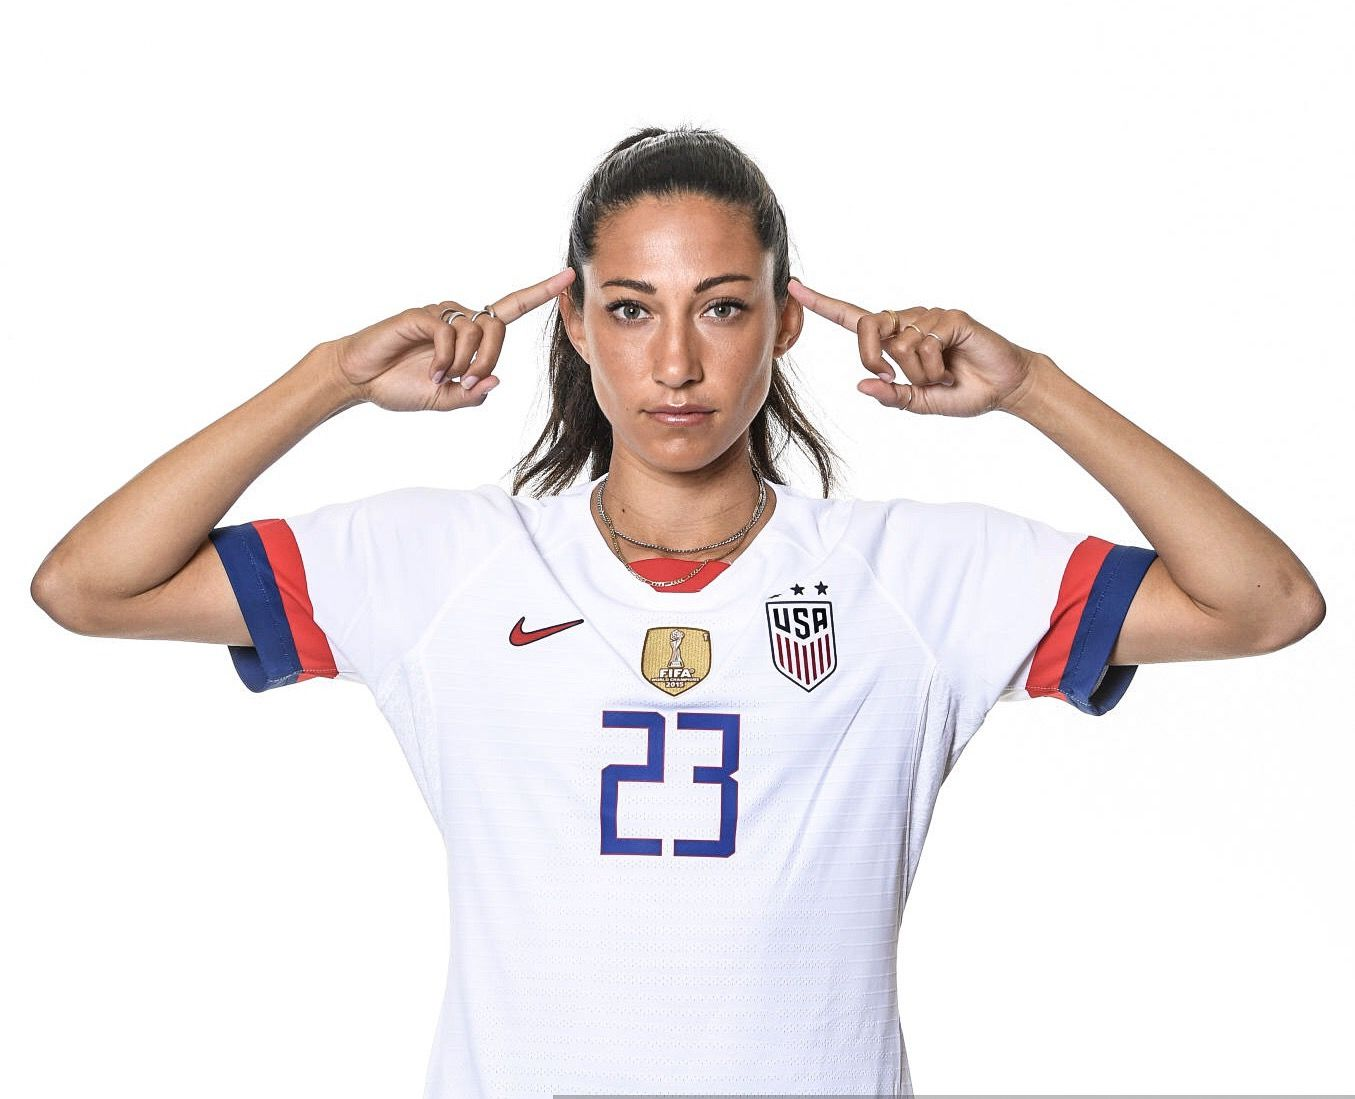 Christen Press 23 Uswnt Official Fifa Women S World Cup 2019 Portrait Uswnt Uswnt Soccer Fifa Women S World Cup